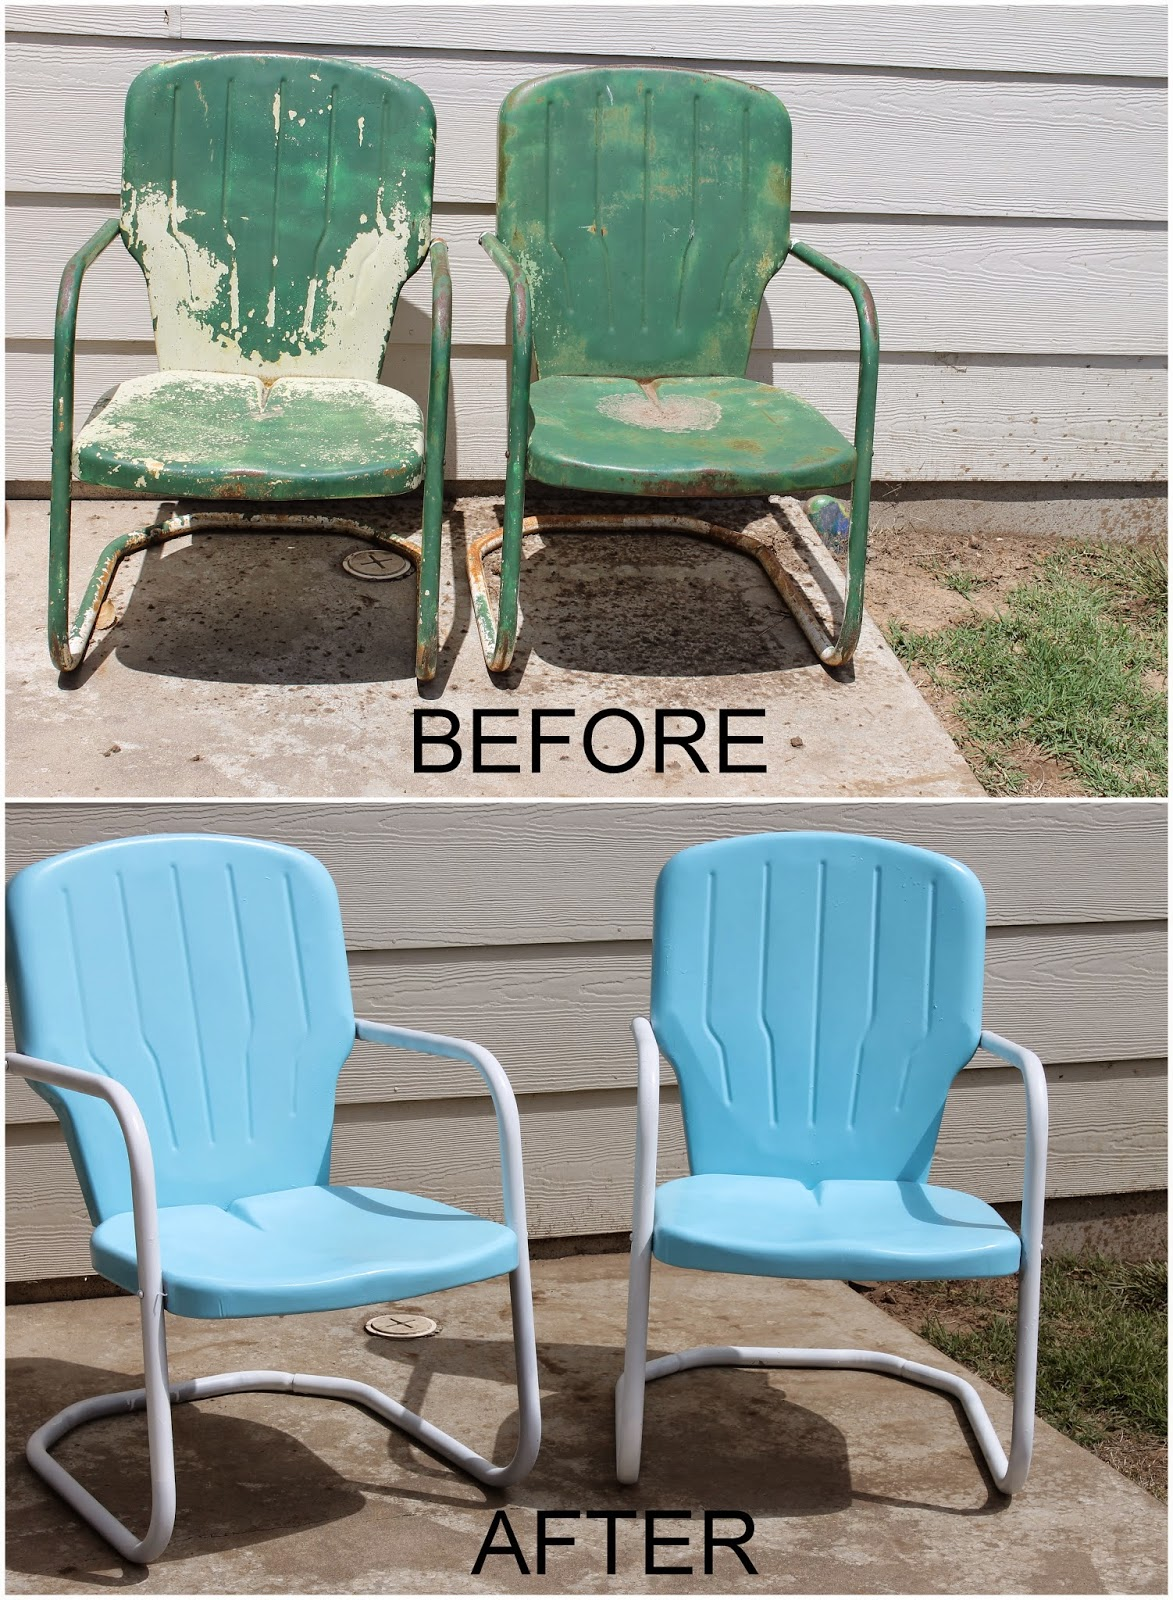 Steel Chair Diy Patio With Shade Repaint Old Metal Chairs Paint Outdoor